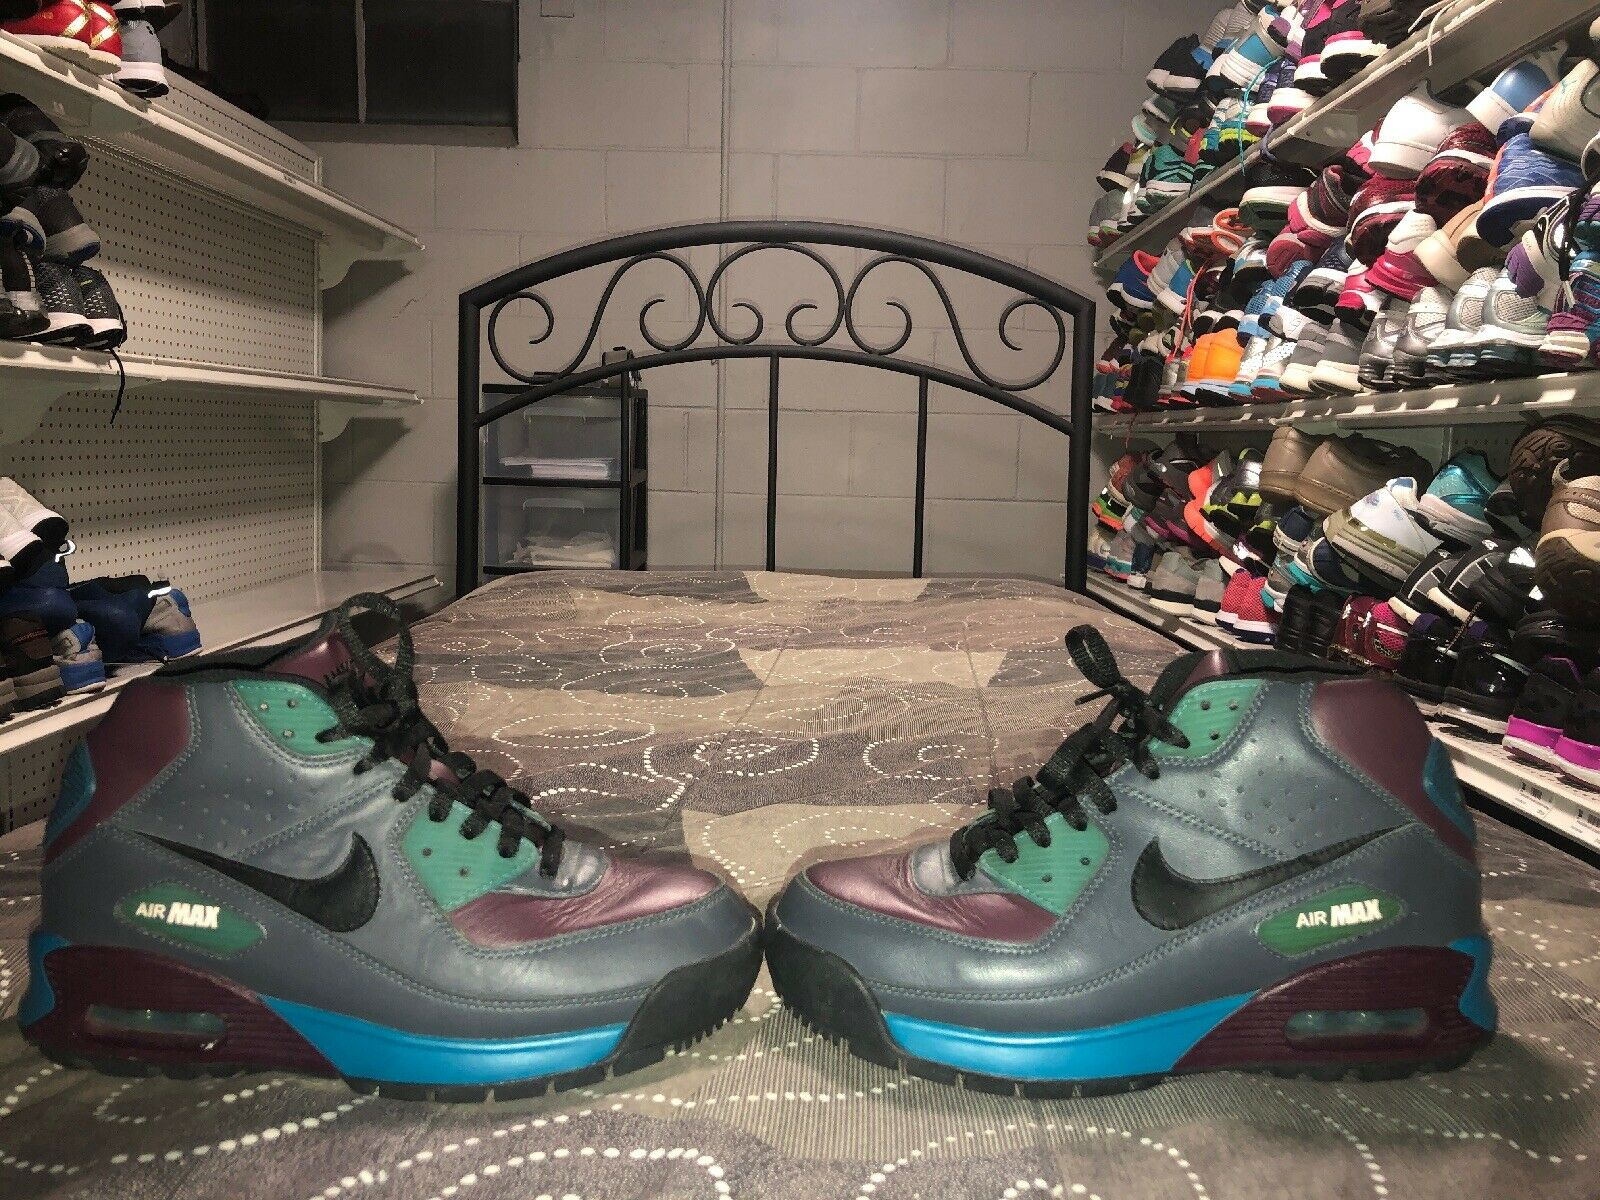 Nike Air Max 90 Womens Leather Athletic Sneakerboots shoes Size 8 Multi color